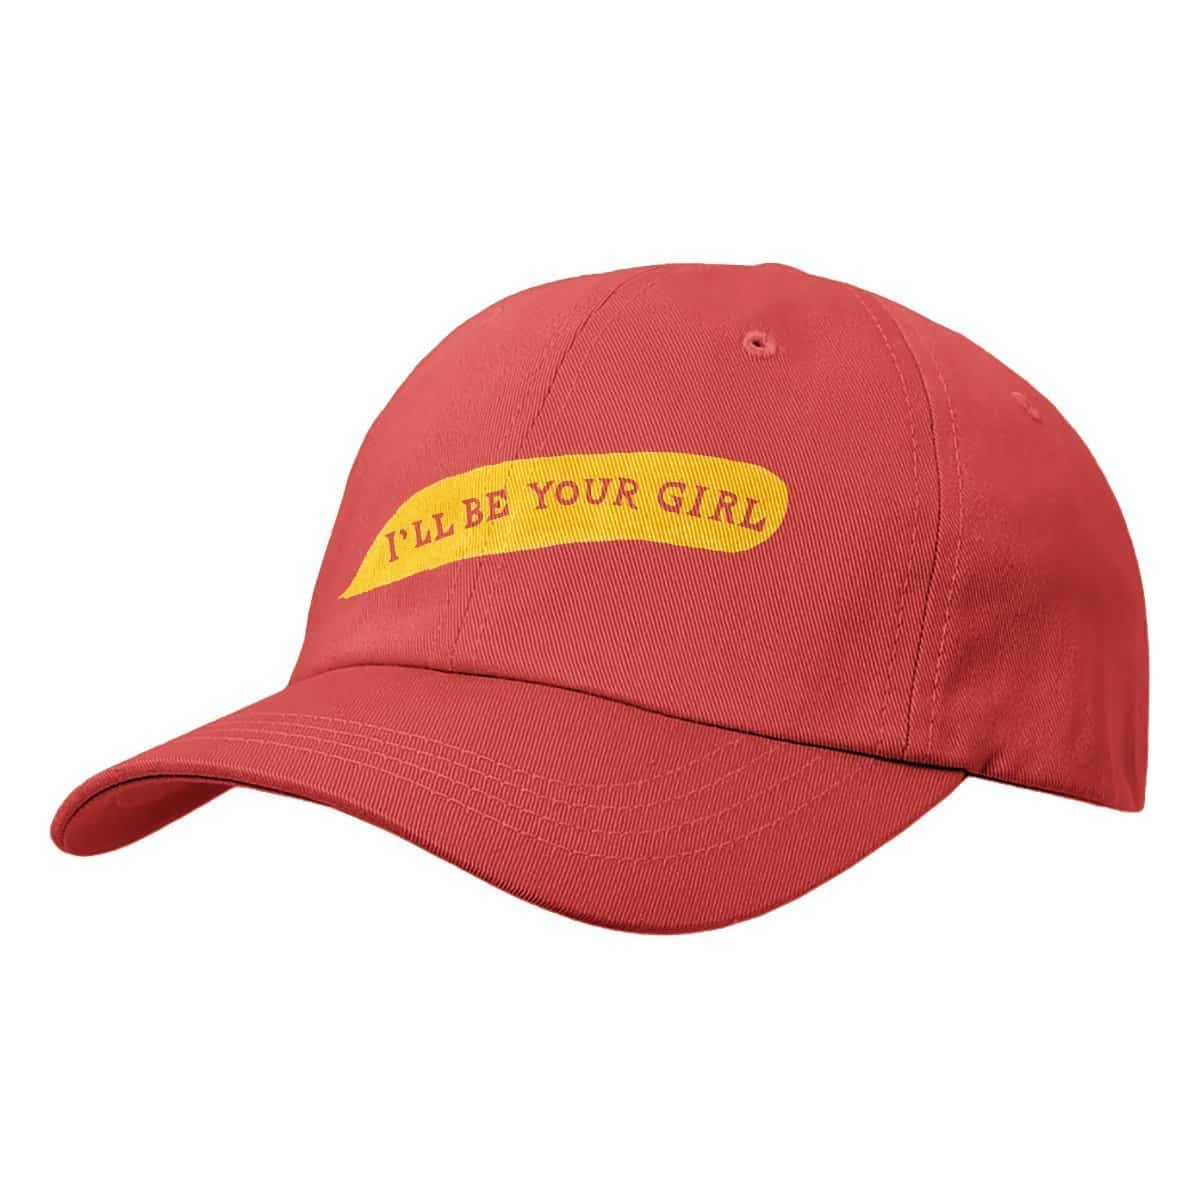 'I'll Be Your Girl' Dad Hat - Red